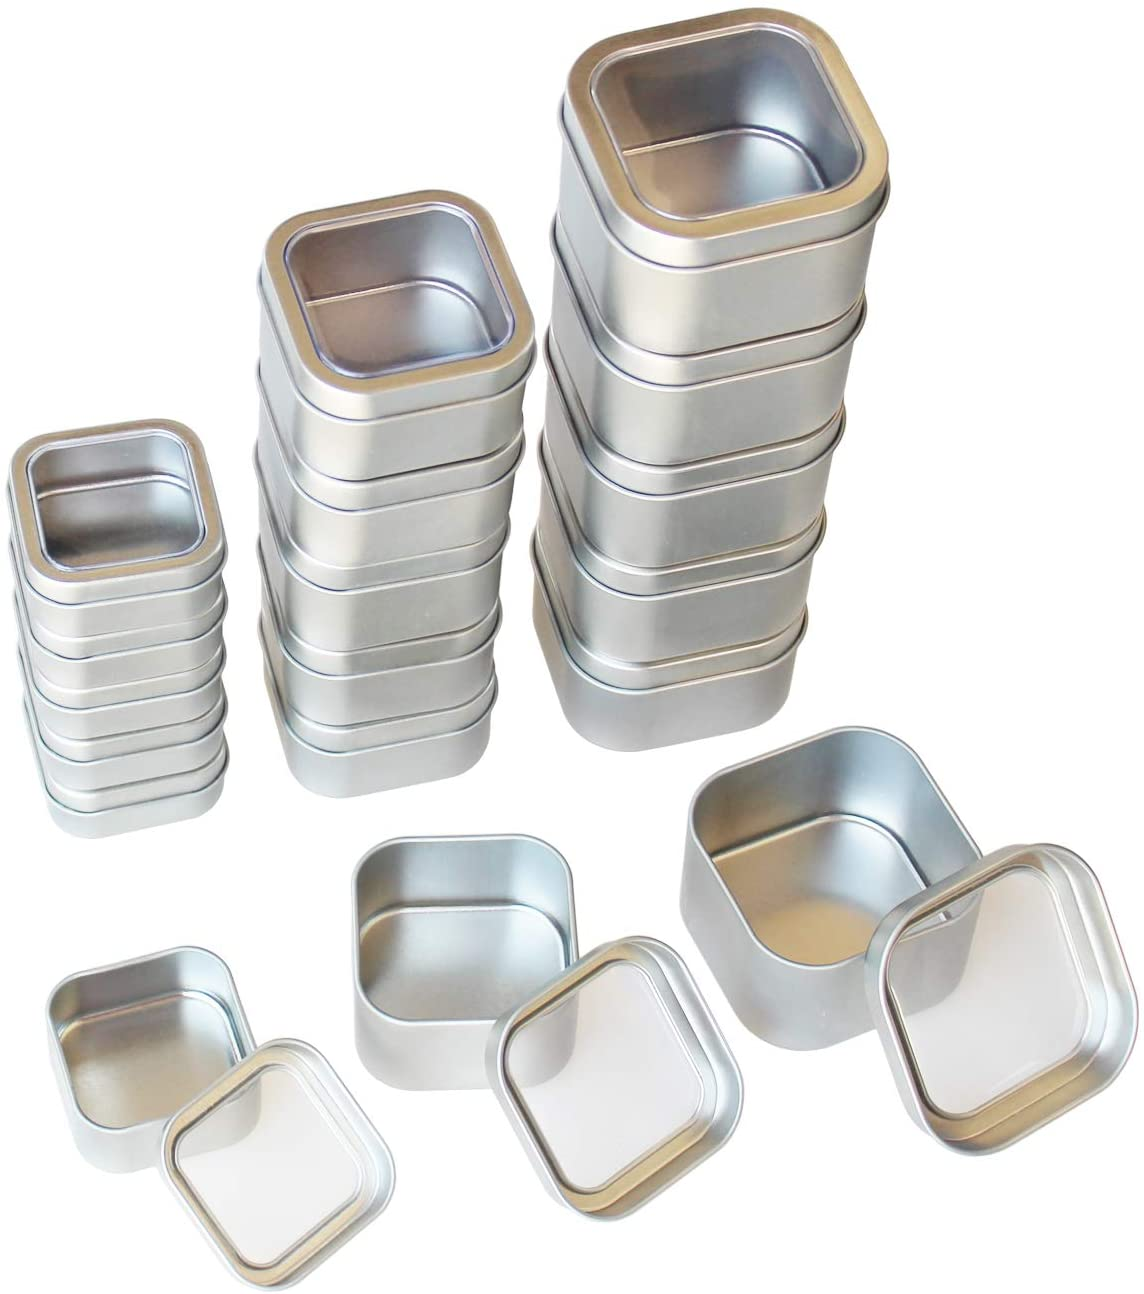 18-Pack Empty Square Silver Metal Tins with Clear Window for Candle Making, Candies, Gifts & Treasures, Mixed Sizes